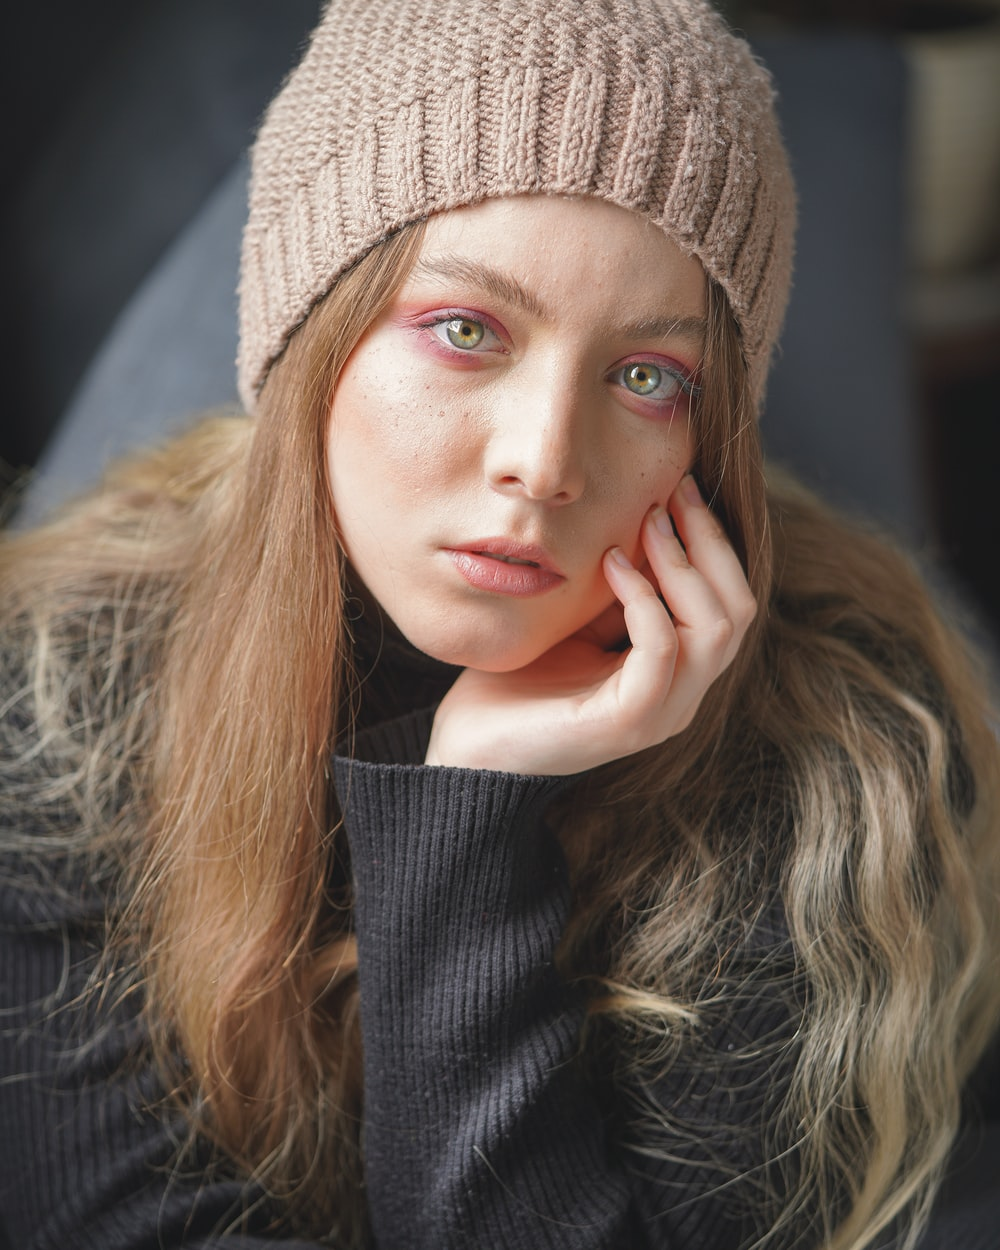 woman in gray knit cap and black long sleeve shirt